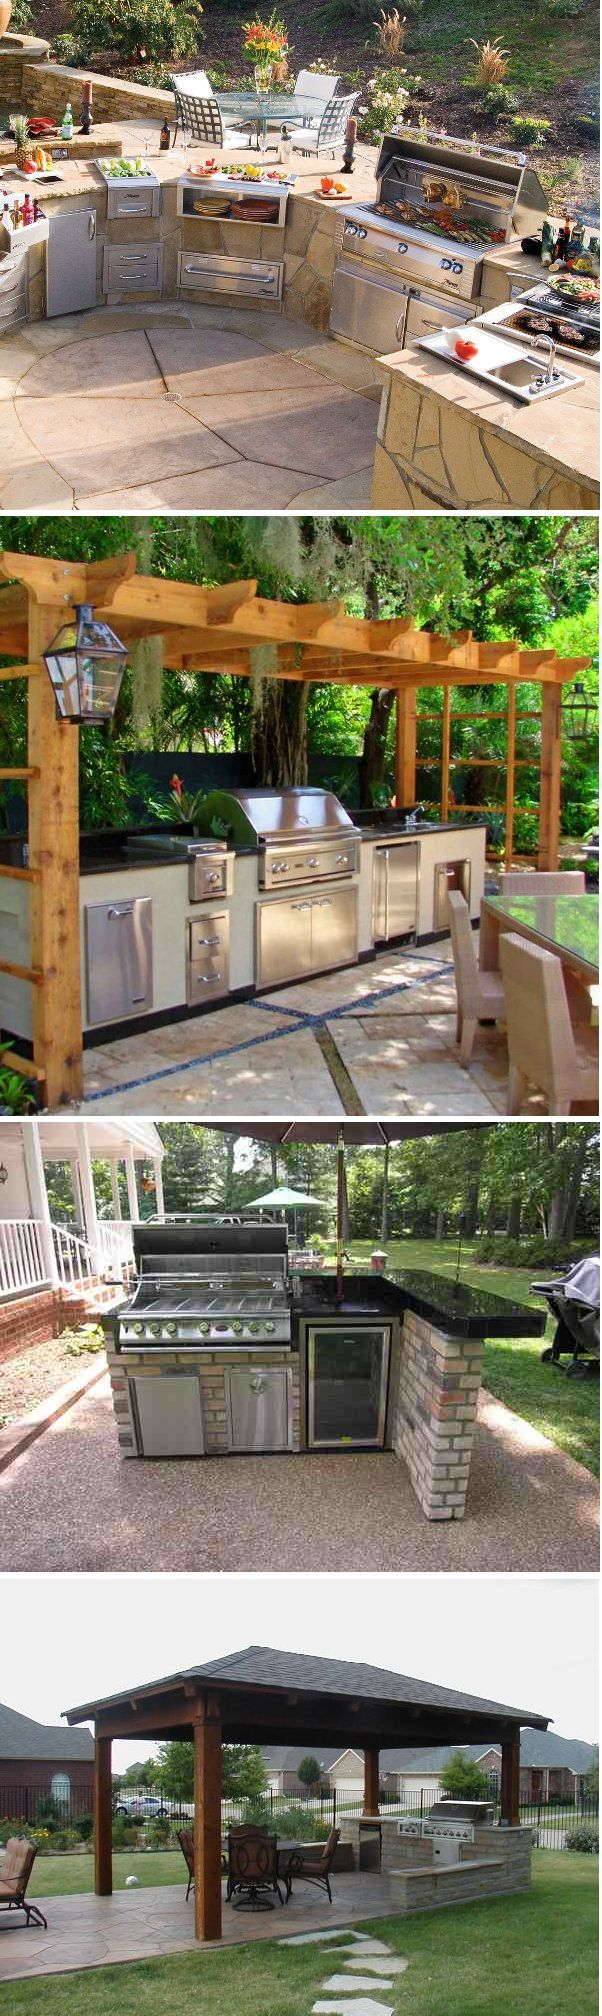 17 best ideas about backyard kitchen on pinterest outdoor kitchens outdoor grill area and patio